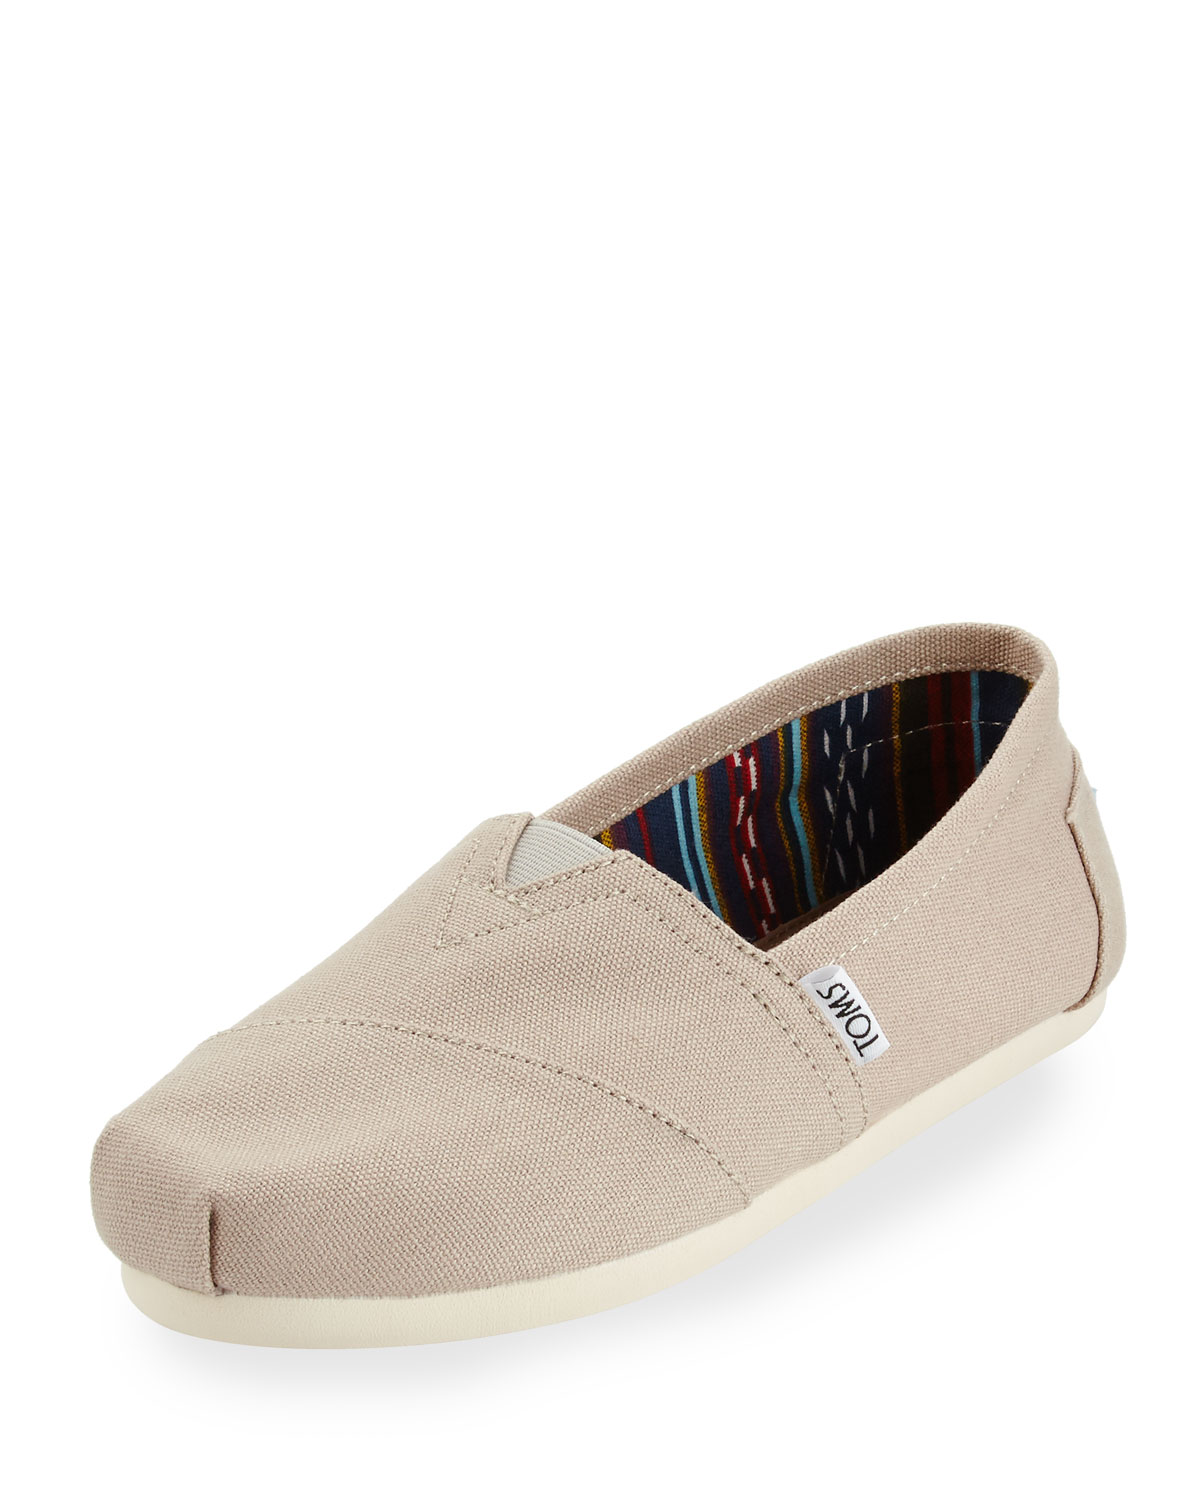 TOMS Classic Alpargata Printed Slip-On Shoe